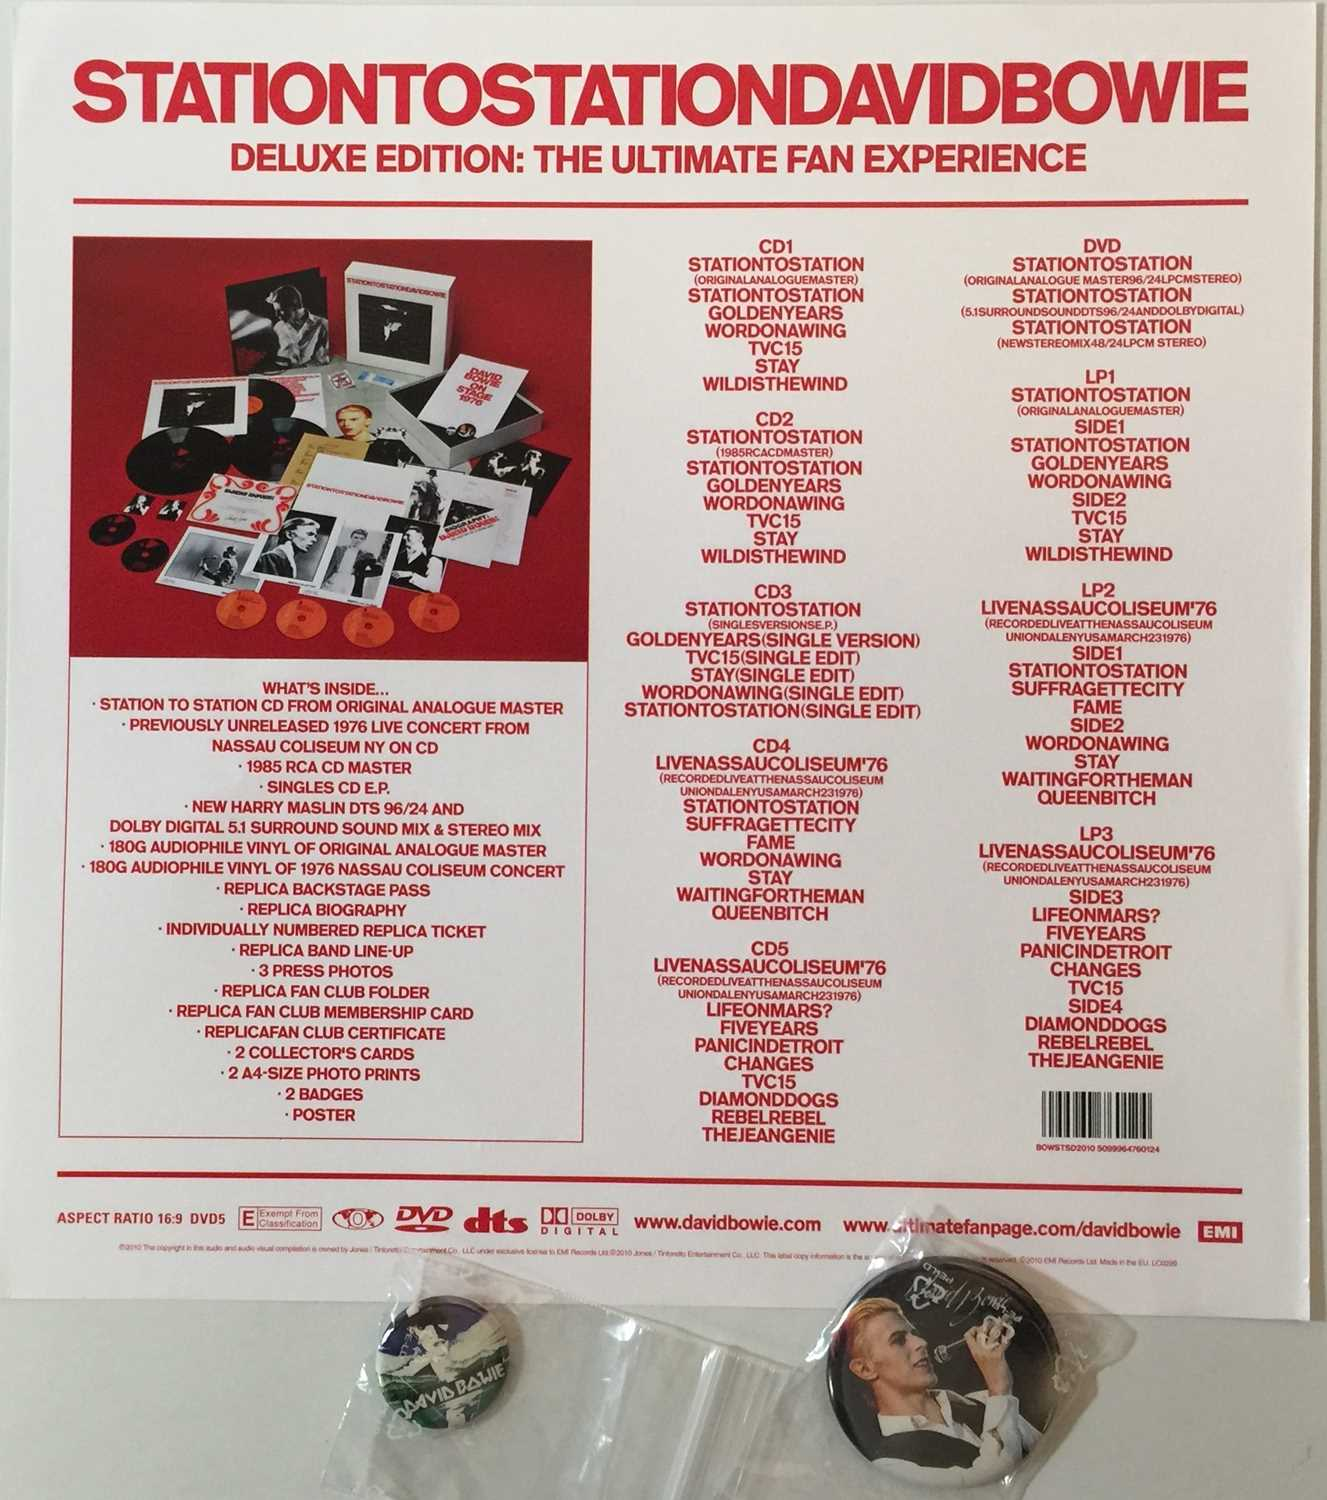 DAVID BOWIE - STATION TO STATION - DELUXE LP/ CD BOX-SET(BOWSTSD2010) - Image 4 of 5